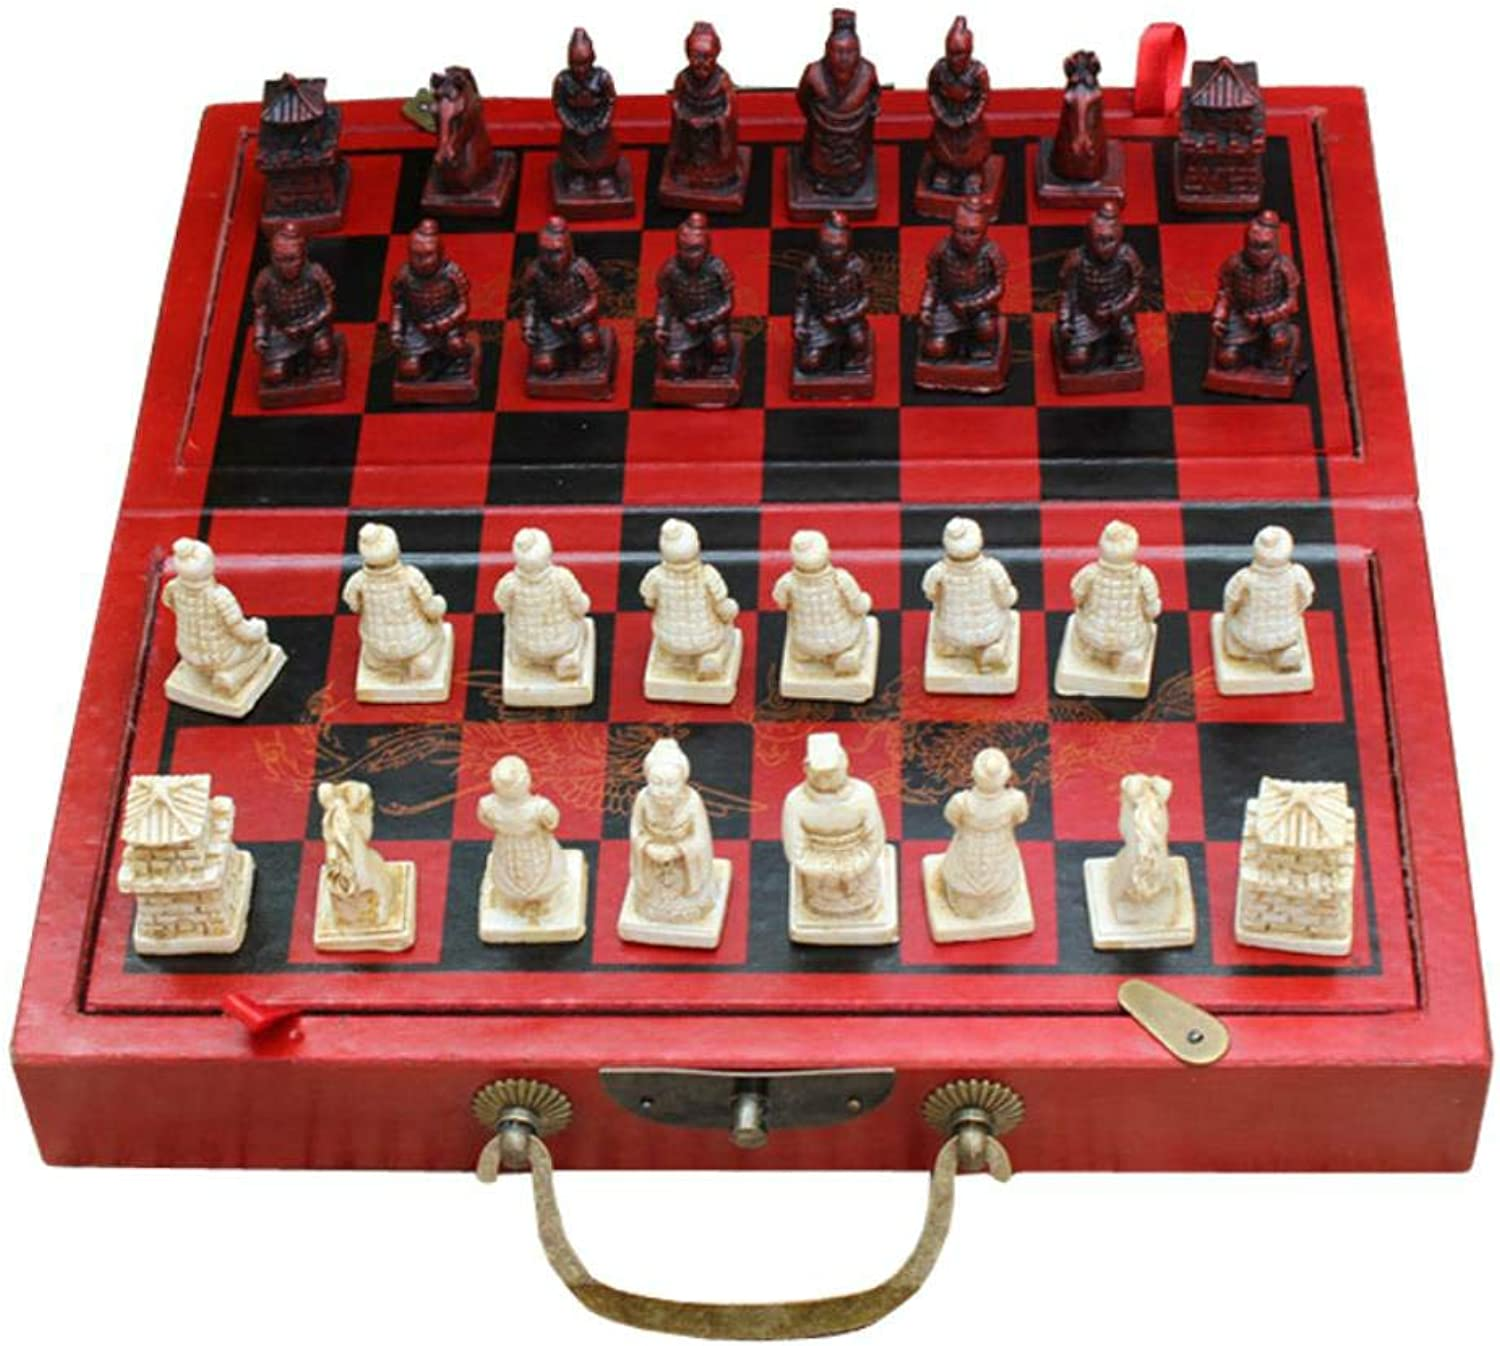 Qupanpan Wooden chess game folding chessboard terracotta warriorsA2929cm